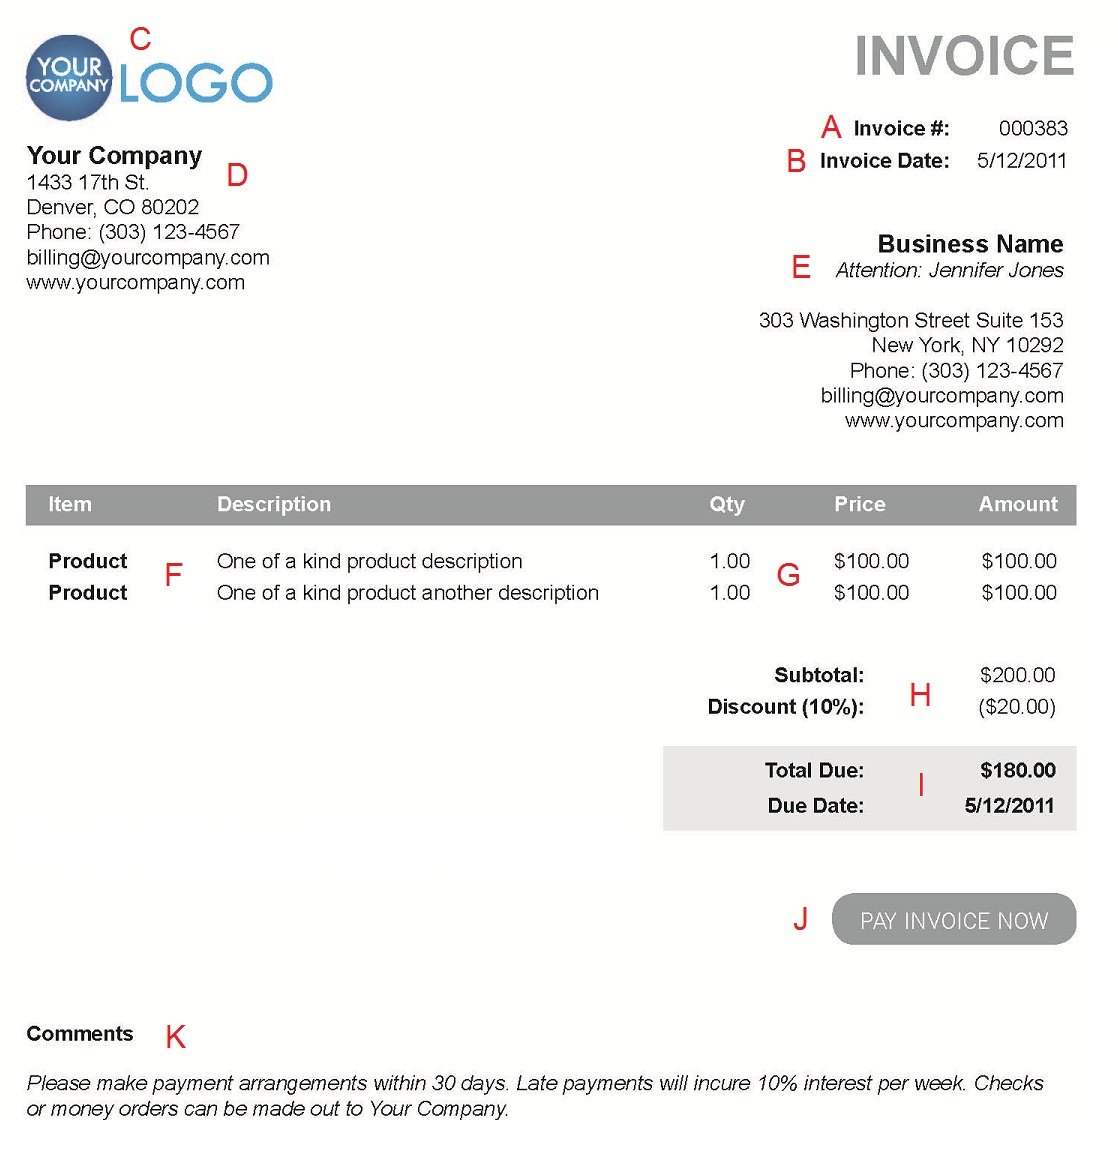 Pigbrotherus  Unusual The  Different Sections Of An Electronic Payment Invoice With Interesting A  With Charming Bay Area Fastrak Invoice Also Email An Invoice In Addition Simple Invoice Program And Best Invoice Apps As Well As Drupal Commerce Invoice Additionally Trucking Invoice Template Free From Paysimplecom With Pigbrotherus  Interesting The  Different Sections Of An Electronic Payment Invoice With Charming A  And Unusual Bay Area Fastrak Invoice Also Email An Invoice In Addition Simple Invoice Program From Paysimplecom